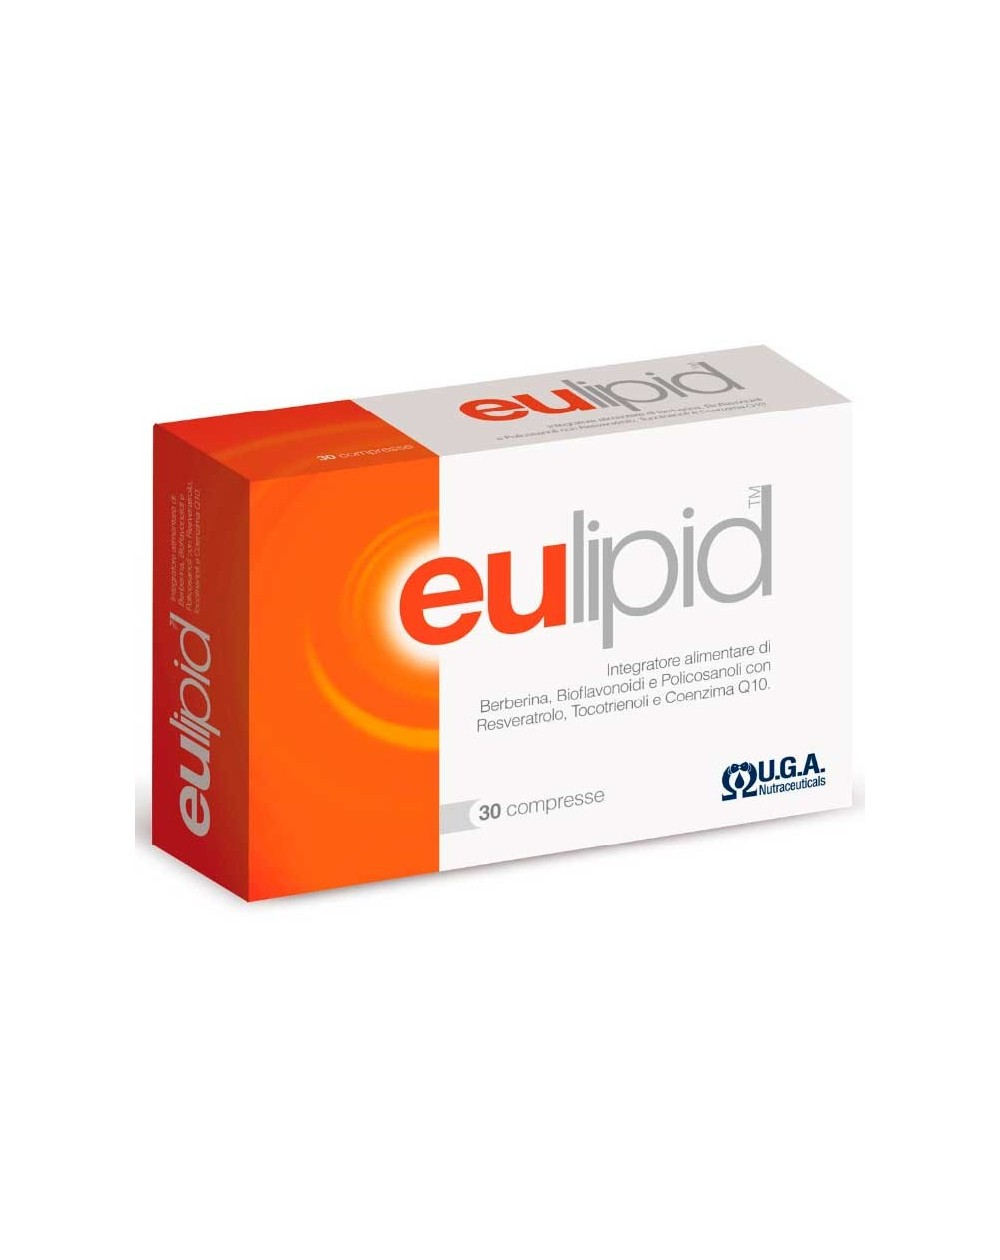 Eulipid